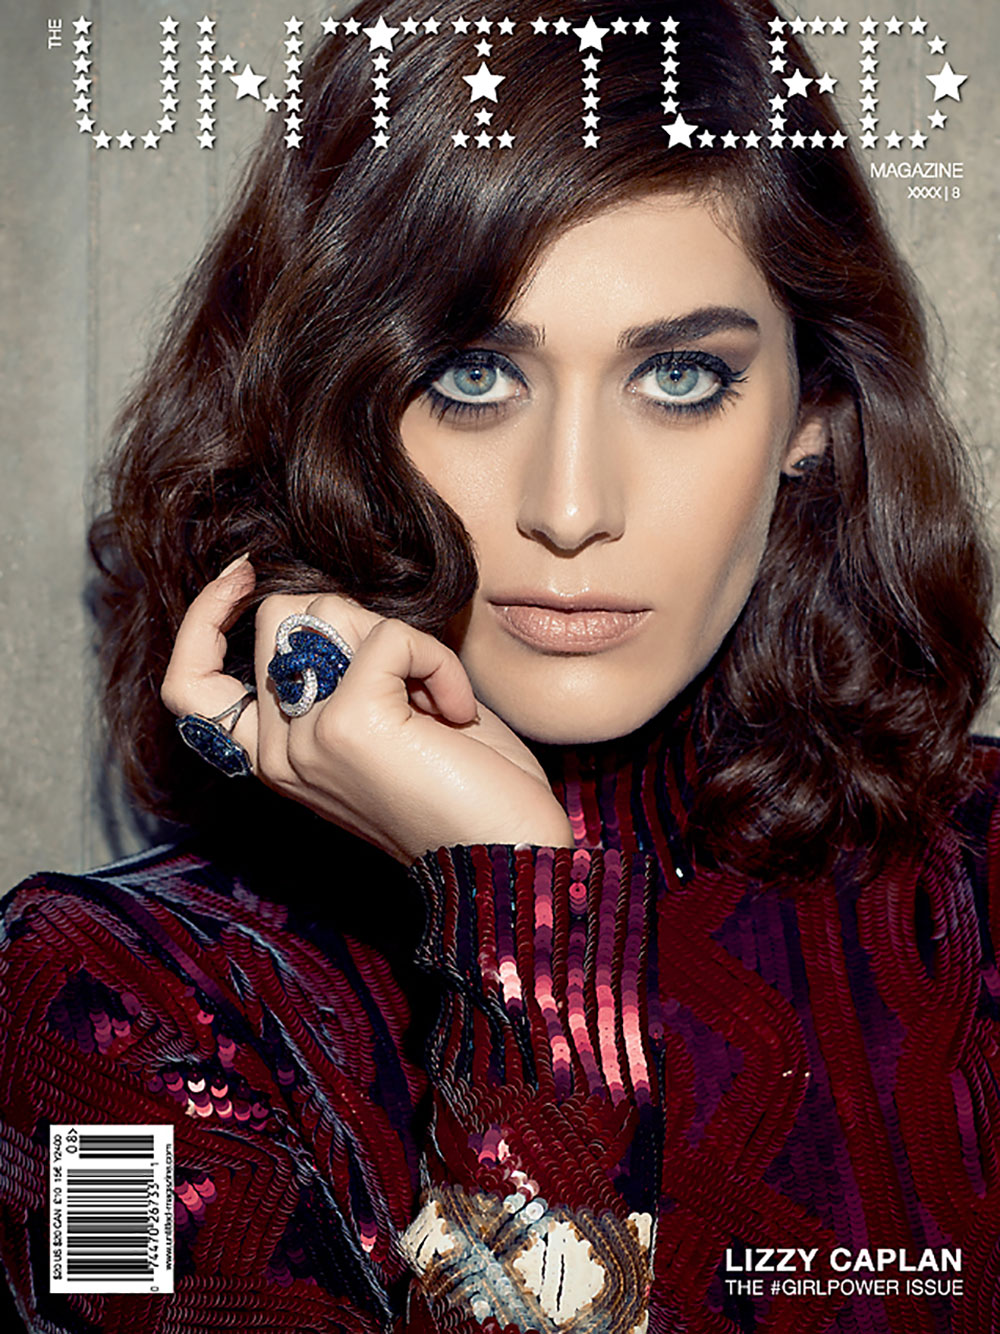 The Untitled Magazine GirlPower Issue - Lizzy Caplan - Photography by Indira Cesarine - Cover